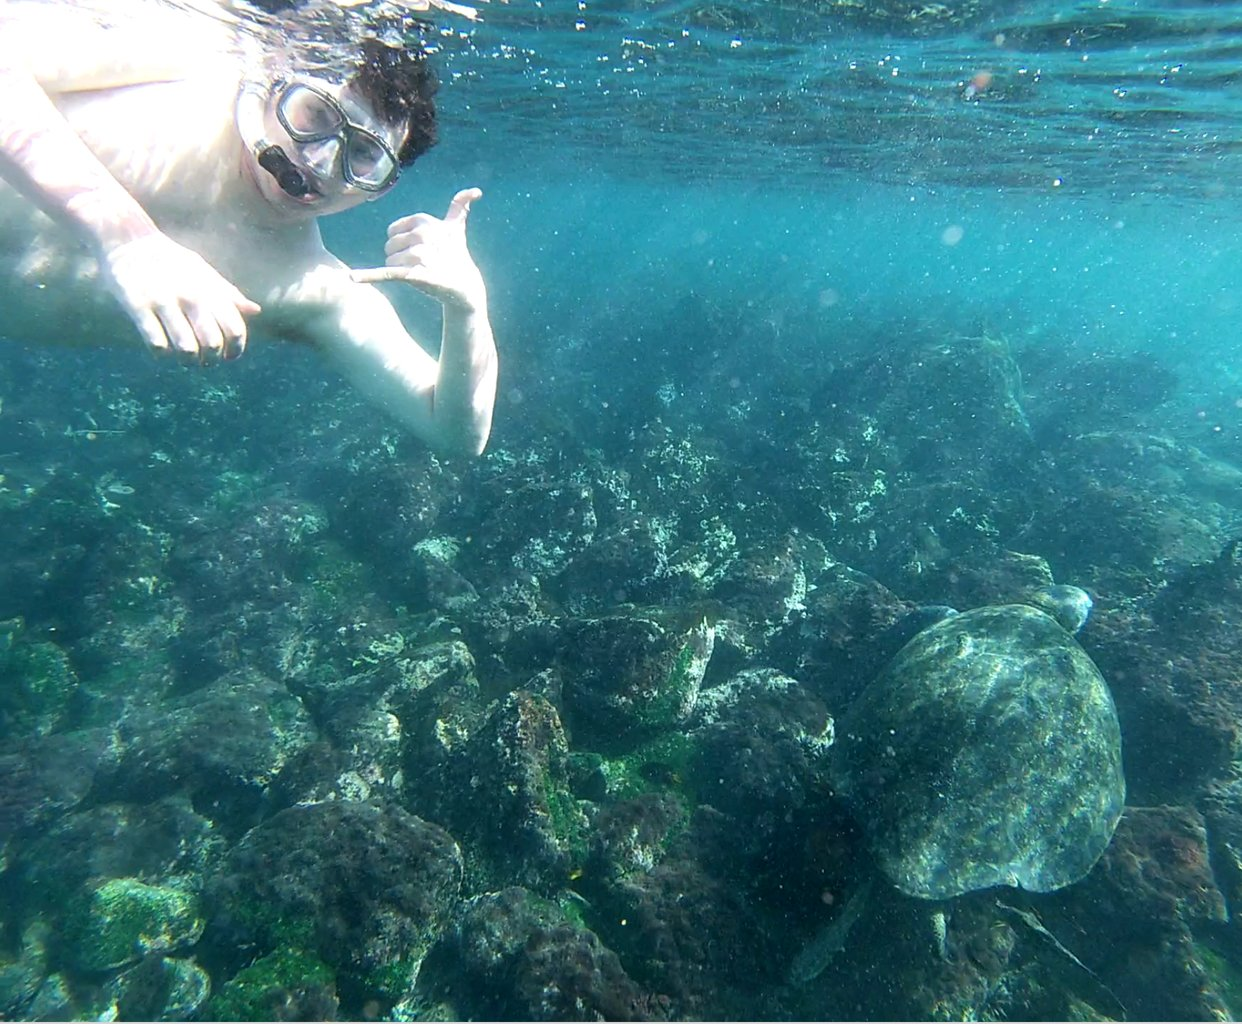 Our first turtle sighting, so exciting! | Photo taken by Peter S